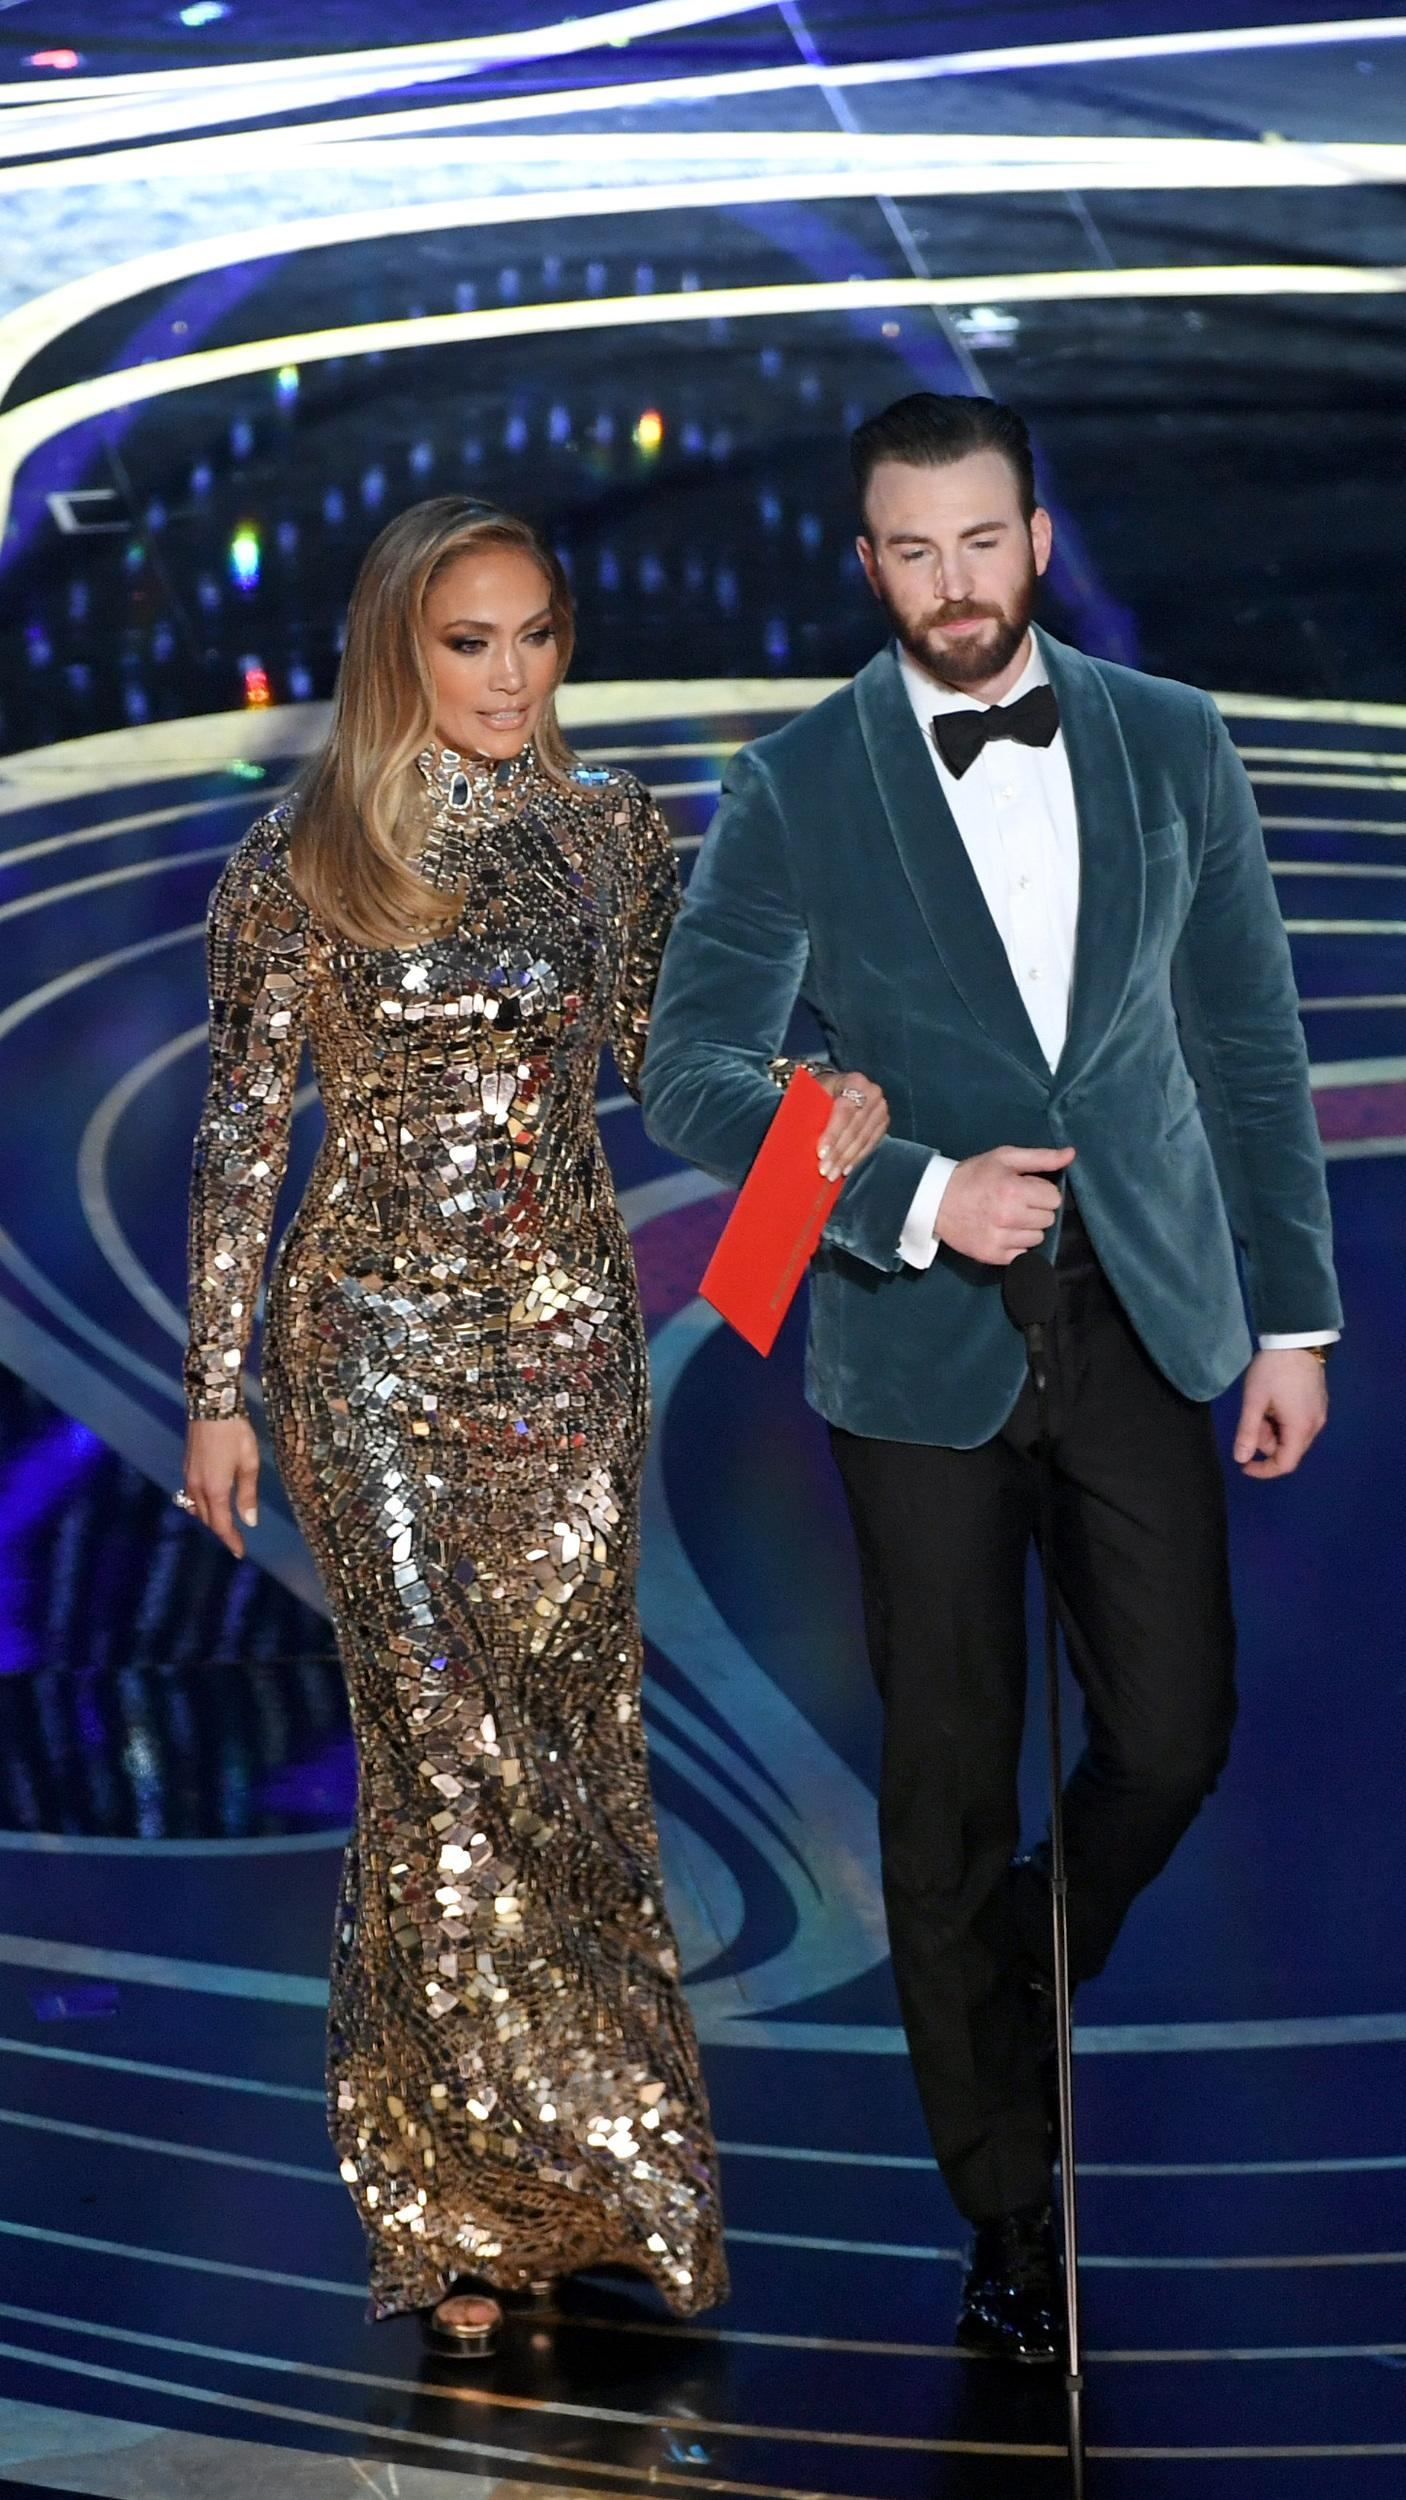 HOLLYWOOD, CALIFORNIA - FEBRUARY 24: (EDITORS NOTE: Retransmission with alternate crop.) (L-R) Jennifer Lopez and Chris Evans speak onstage during the 91st Annual Academy Awards at Dolby Theatre on February 24, 2019 in Hollywood, California. (Photo by Kevin Winter/Getty Images)